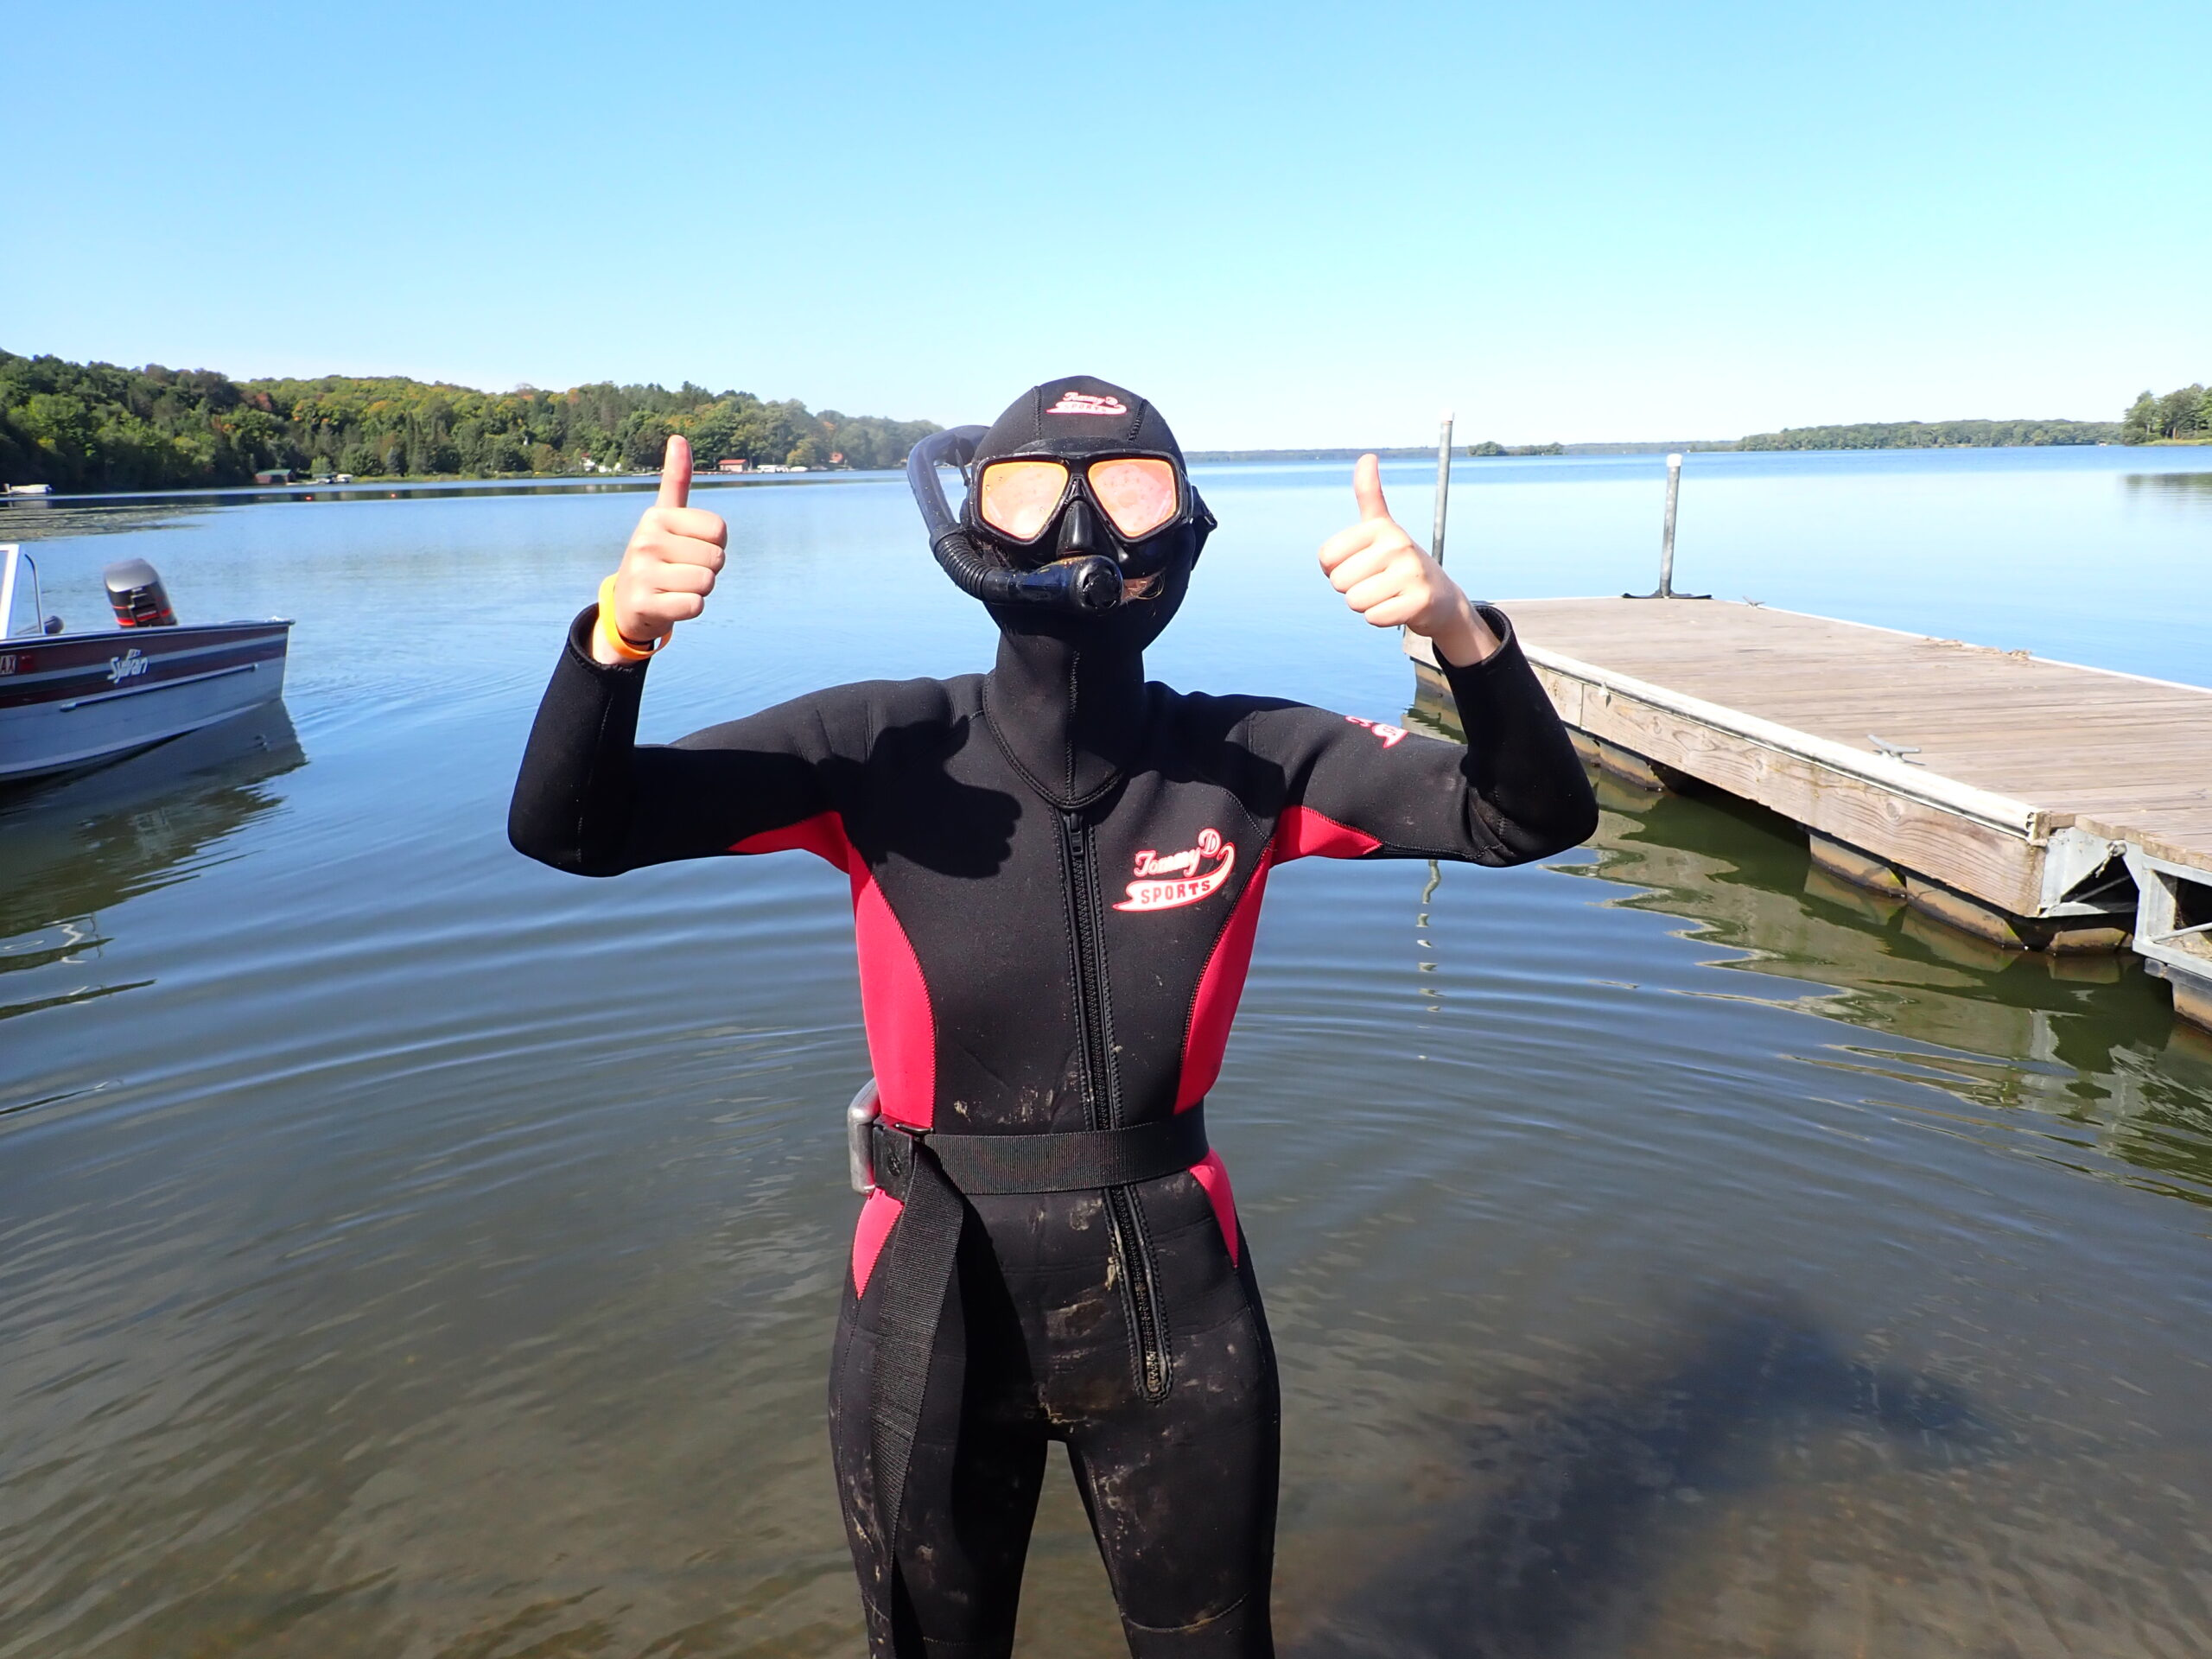 A figure in a full wetsuit with a hood and goggles stands in front of a lake giving two thumbs up.